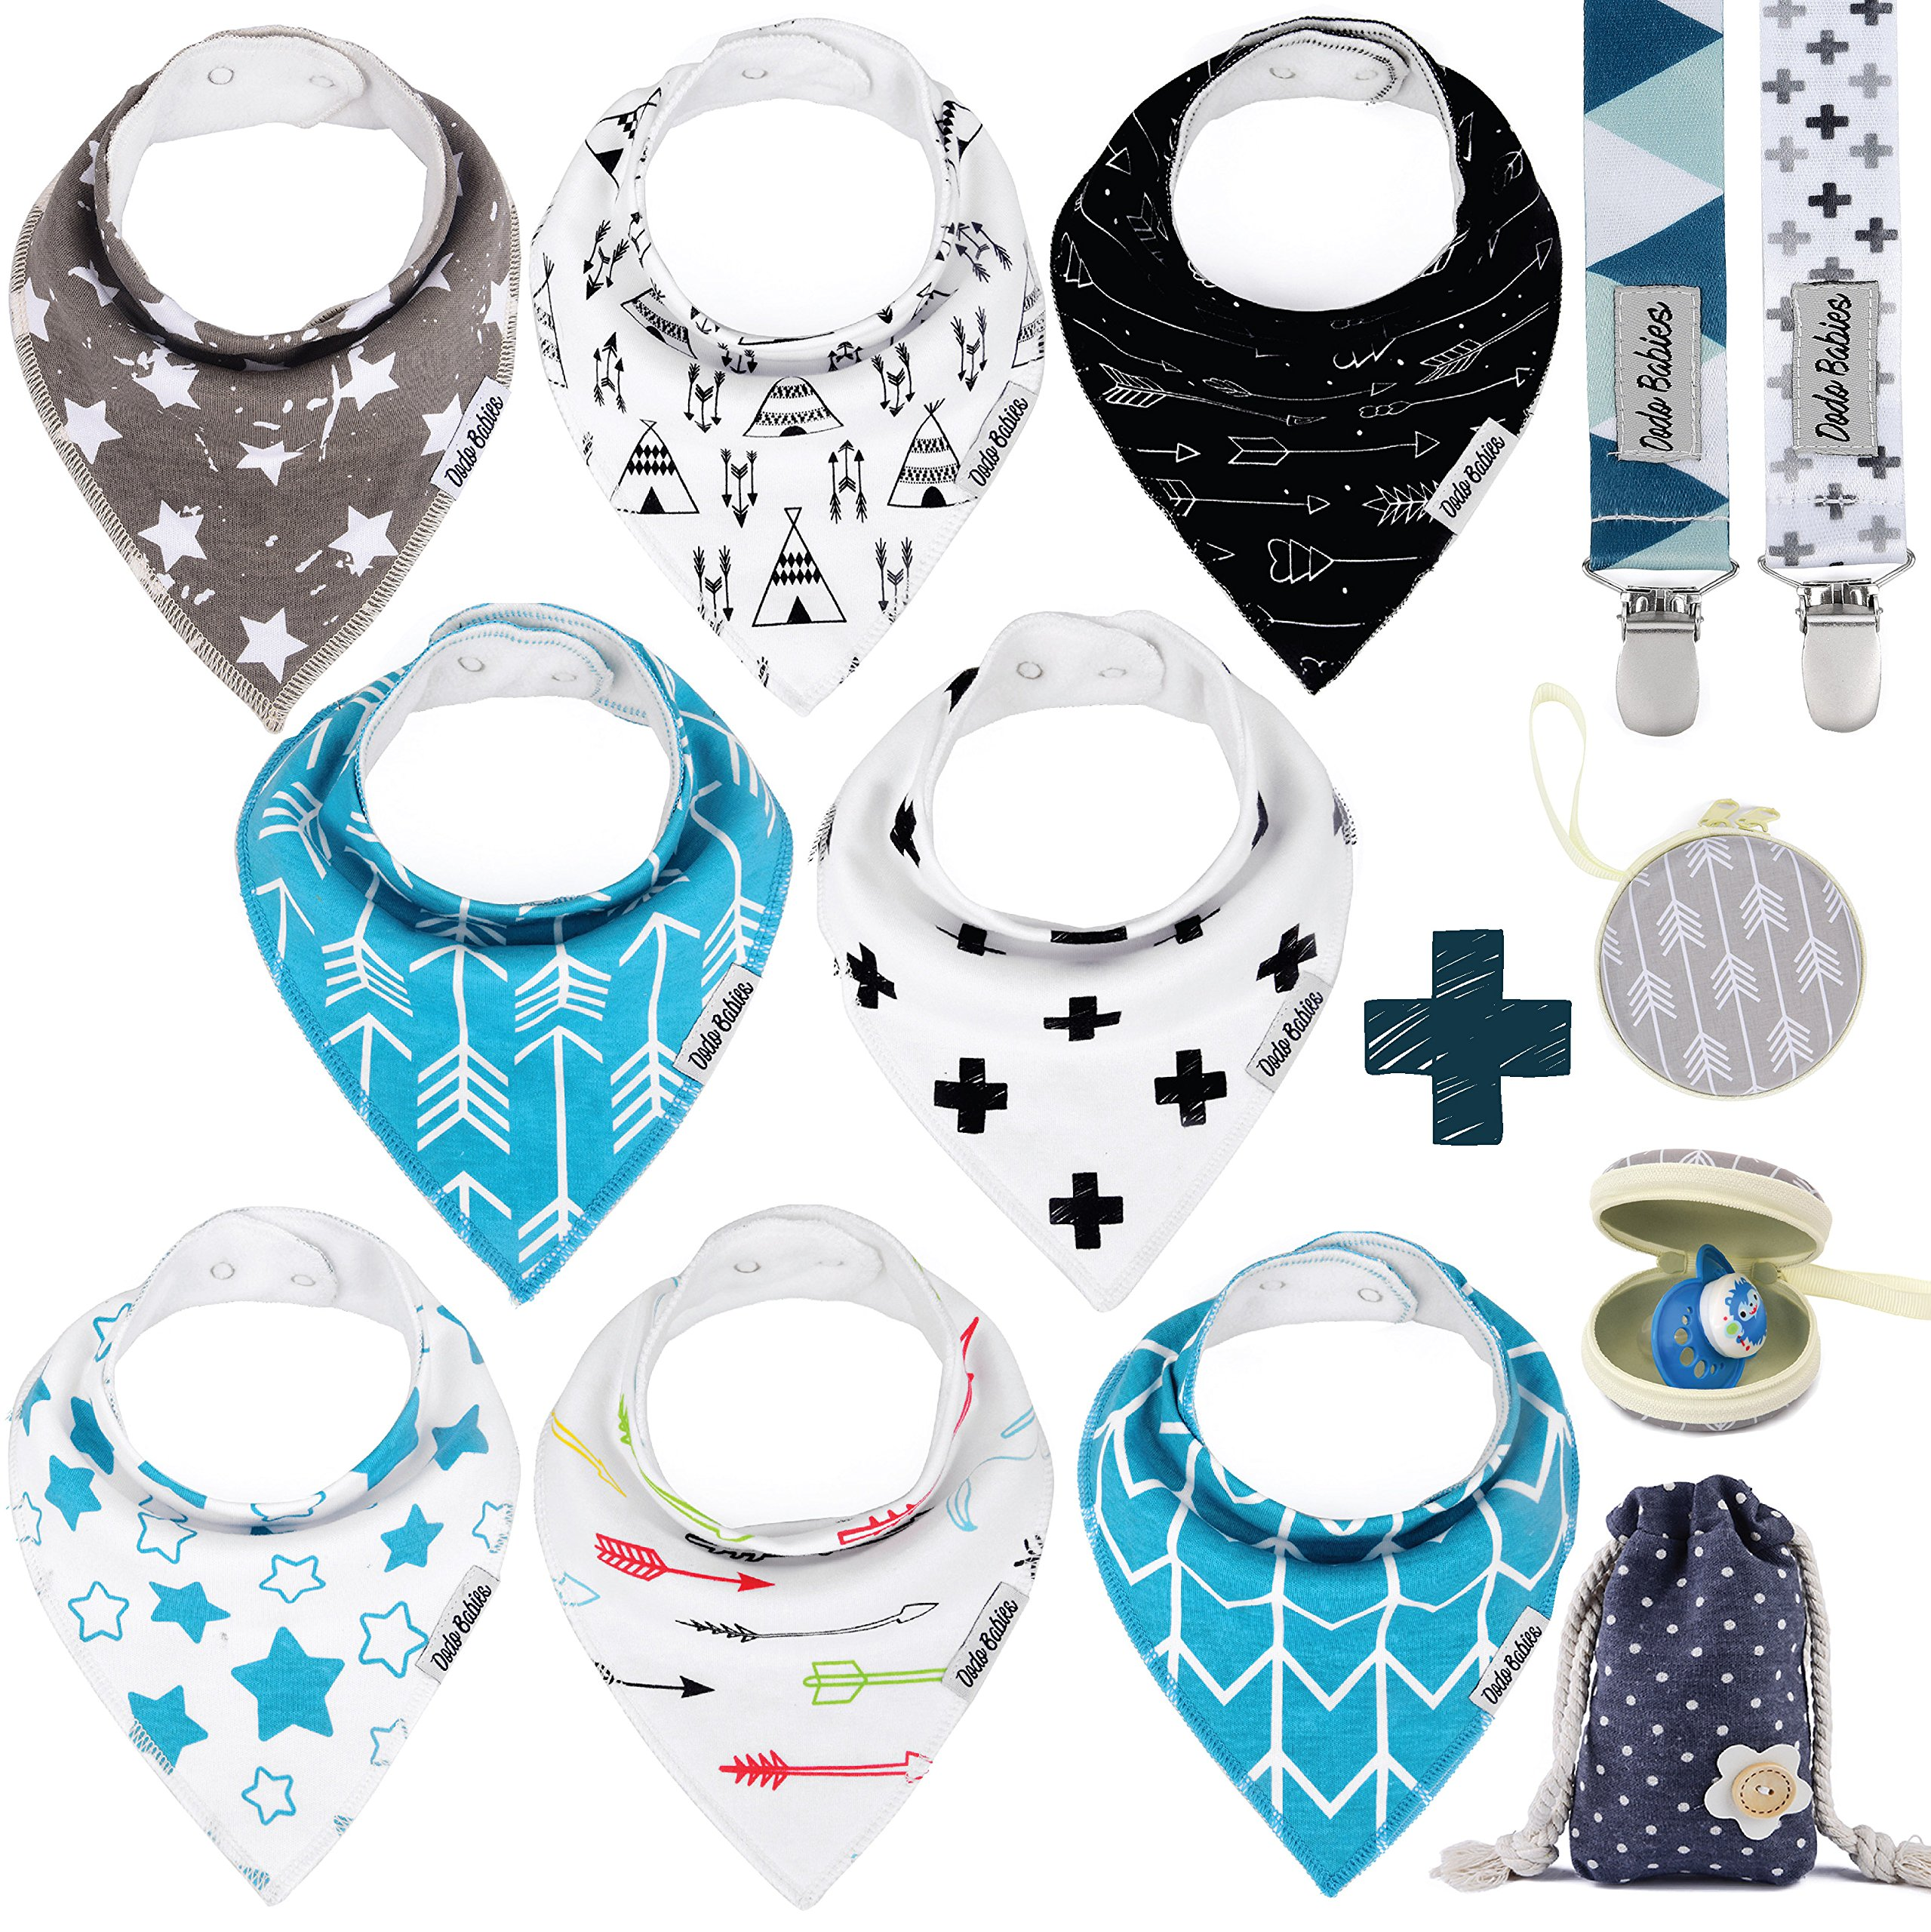 Baby Bandana Drool Bibs by Dodo Babies + 2 Pacifier Clips + Pacifier Case In a Gift Bag, Pack of 8 Premium Quality For Boys or Girls , Excellent Baby Shower / Registry Gift